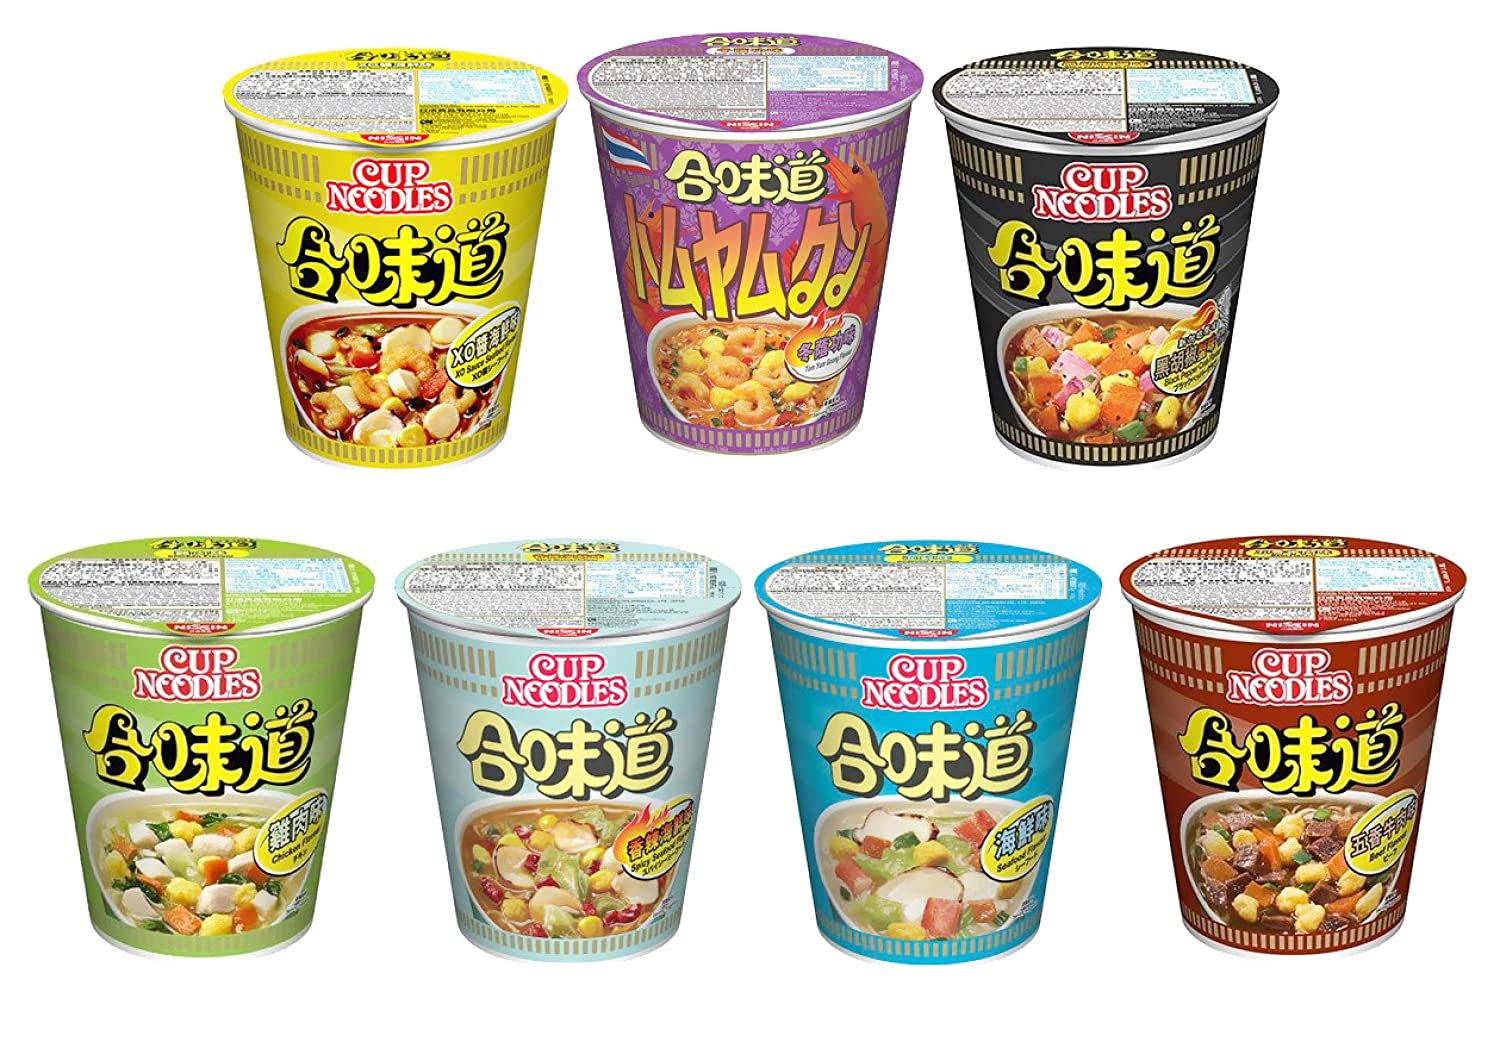 [Pack of 7] Cup Noodle 合味道 Variety Pack (Seafood, Beef, Chicken, Crab, Tom Yum, Spicy Seafood, Black Pepper Crab)